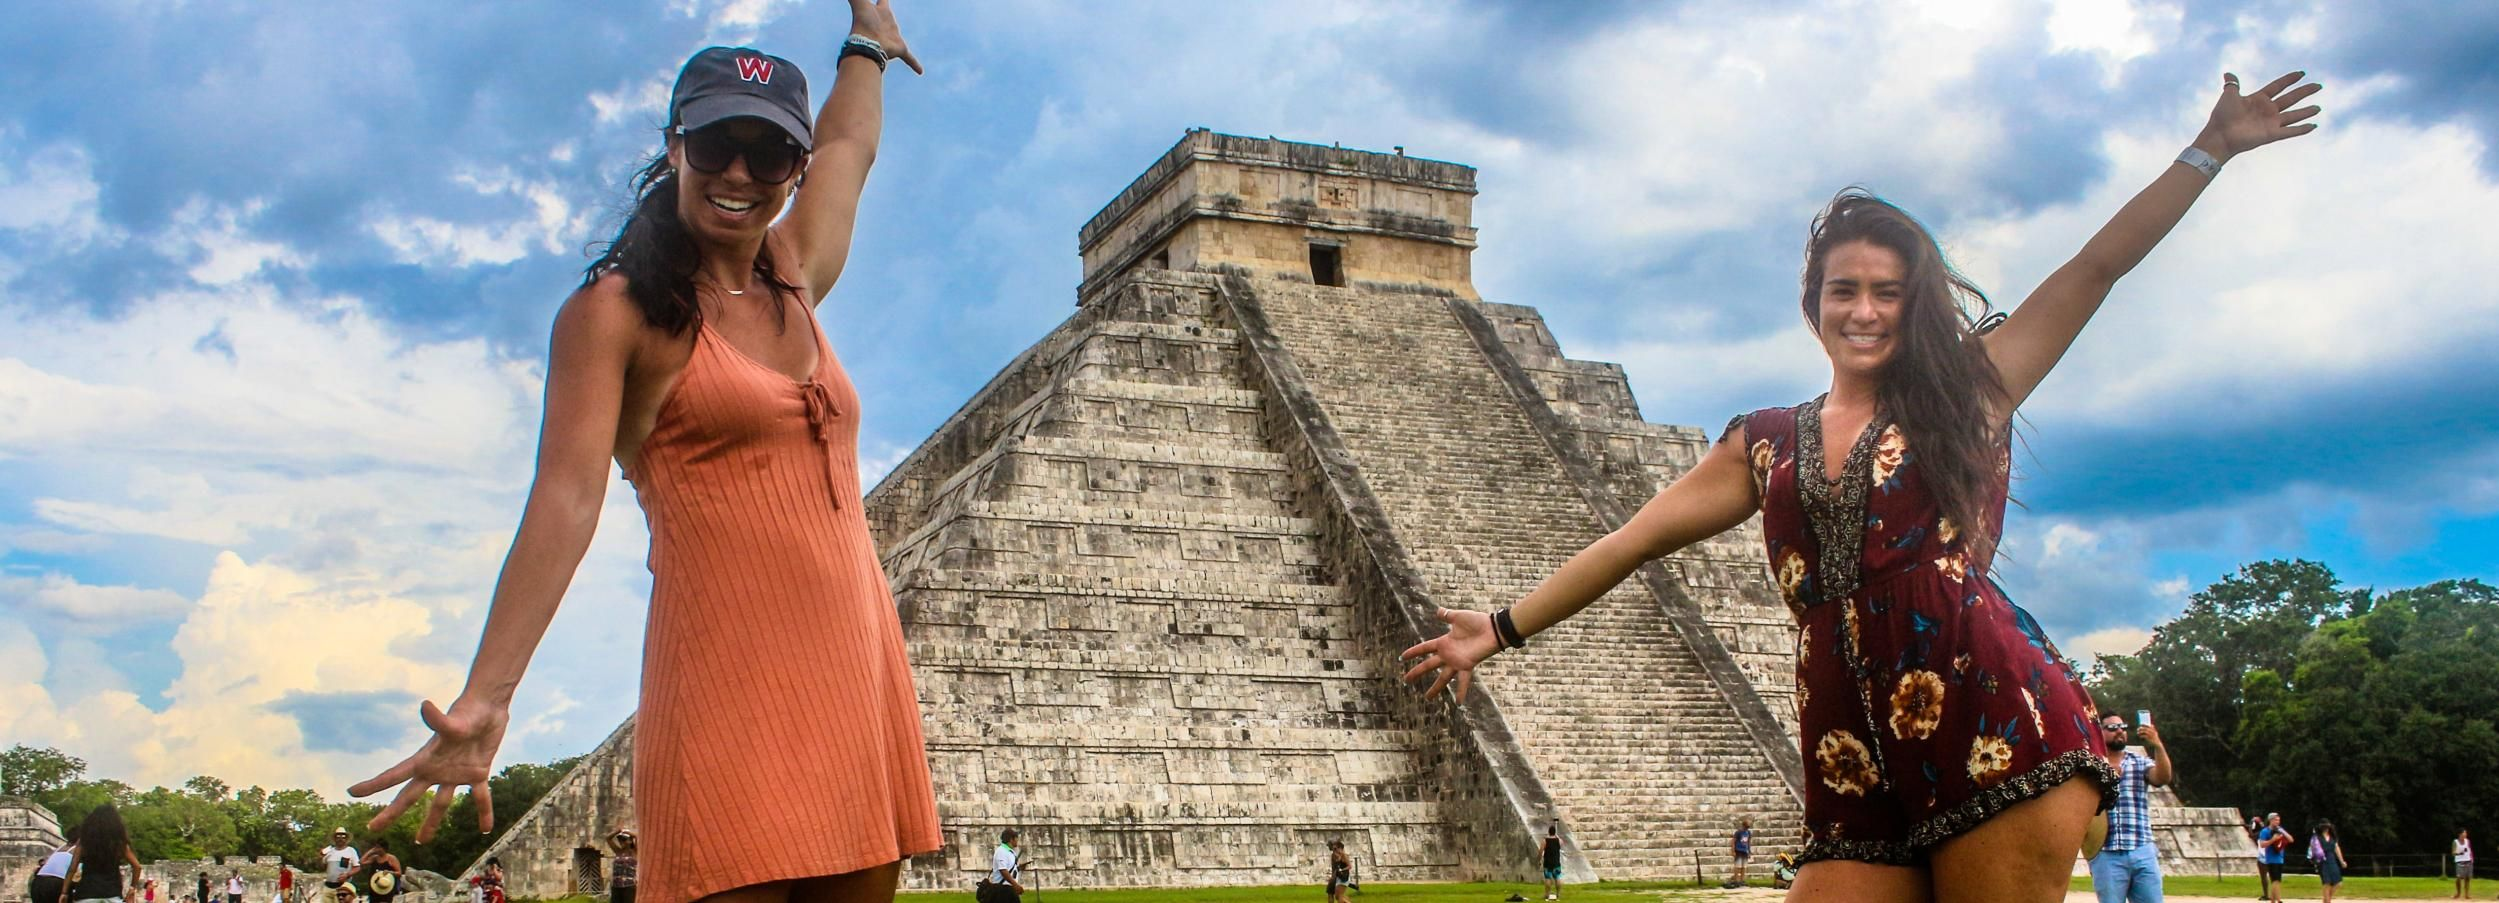 Chichen Itzá Guided Tour With Transfer Options